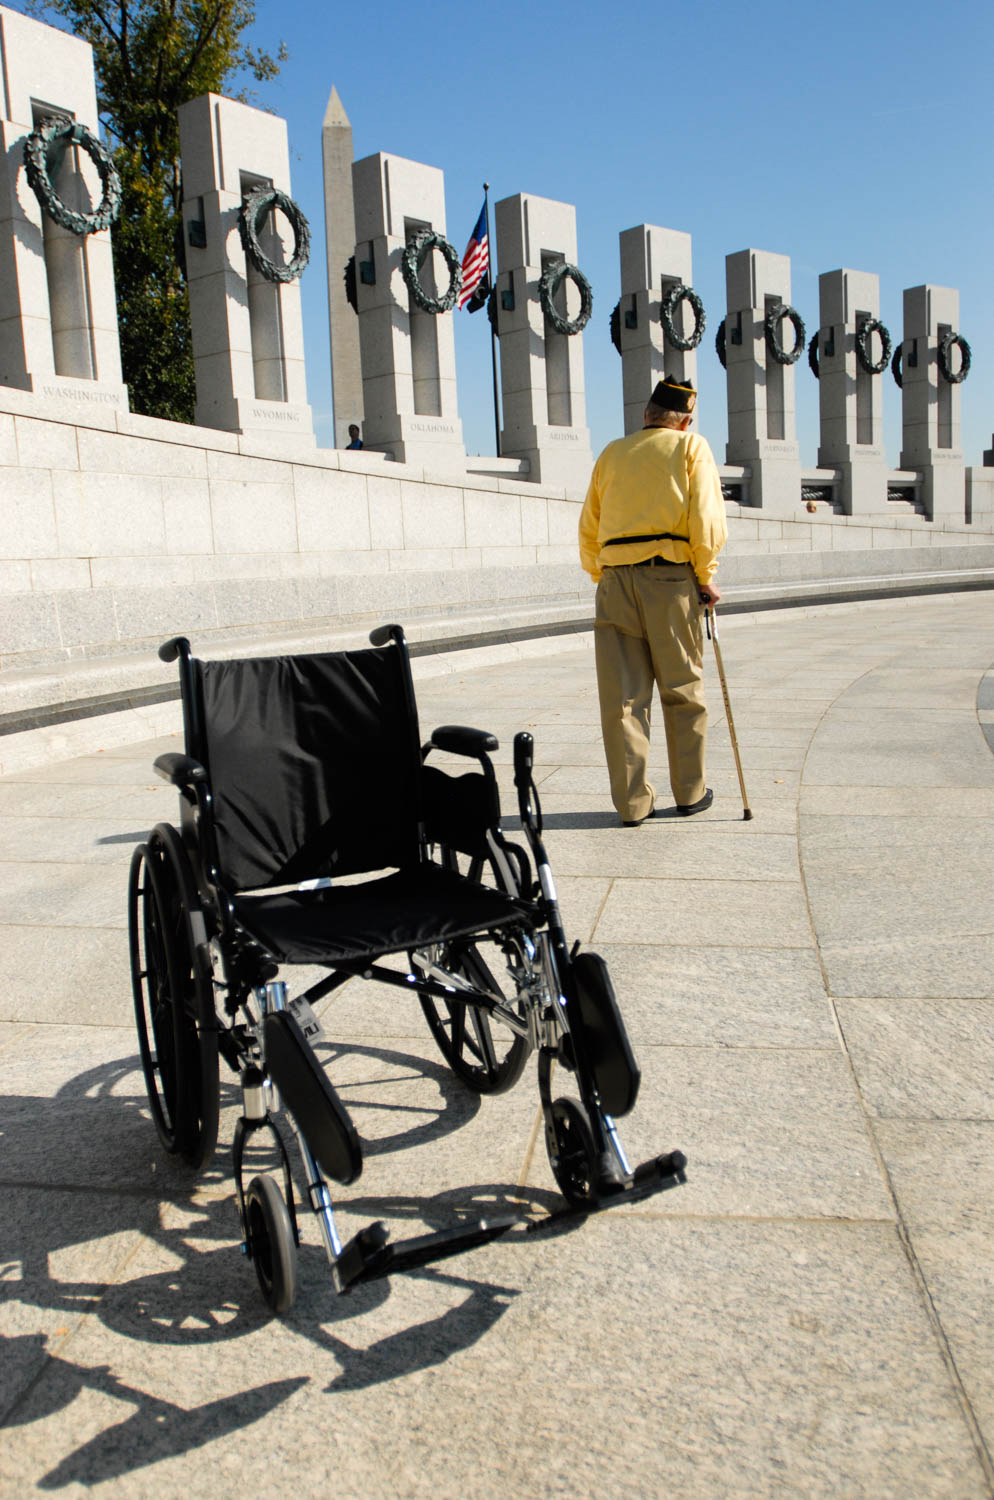 World War II veteran Joe Colmer, of East Moline, leaves his wheelchair behind as he takes a moment to himself while visiting the World War II Memorial in Washington D.C. on Nov. 1, 2008.  Colmer, a veteran of D-Day and other major battles during the war, was among 96 local veterans who traveled to the nation's capital to visit the World War II Memorial as part of Honor Flight of the Quad Cities. (Todd Mizener - Dispatch/Argus)